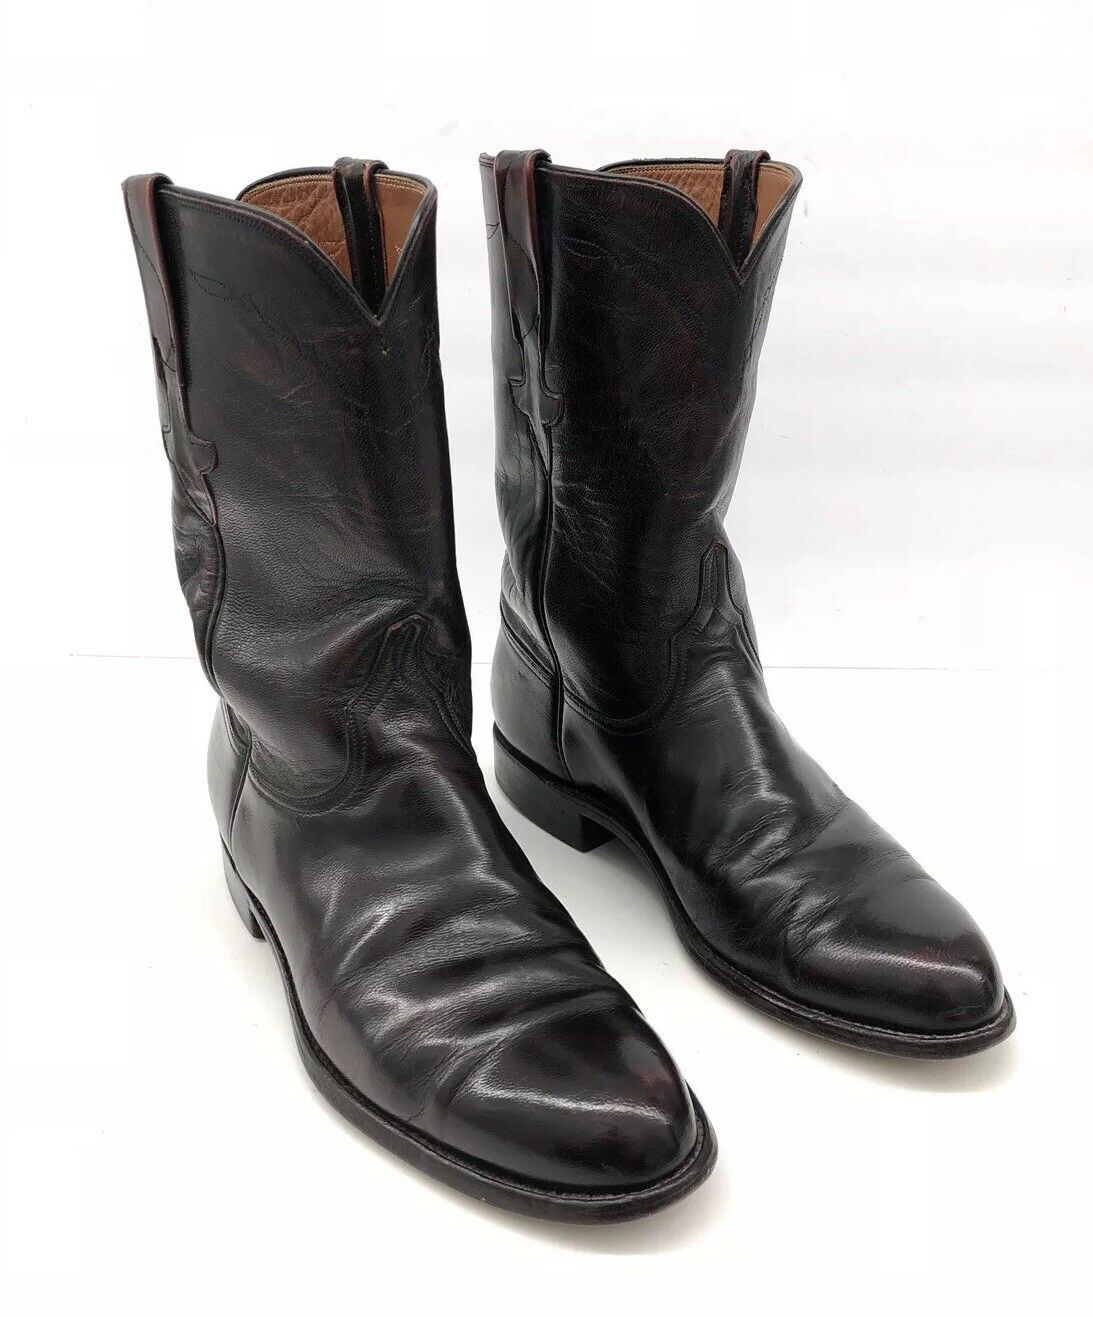 LUCCHESE SAN ANTONIO LEATHER BURGUNDY CHERRY ZIP UP COWBOY BOOTS MENS SIZE 8 D